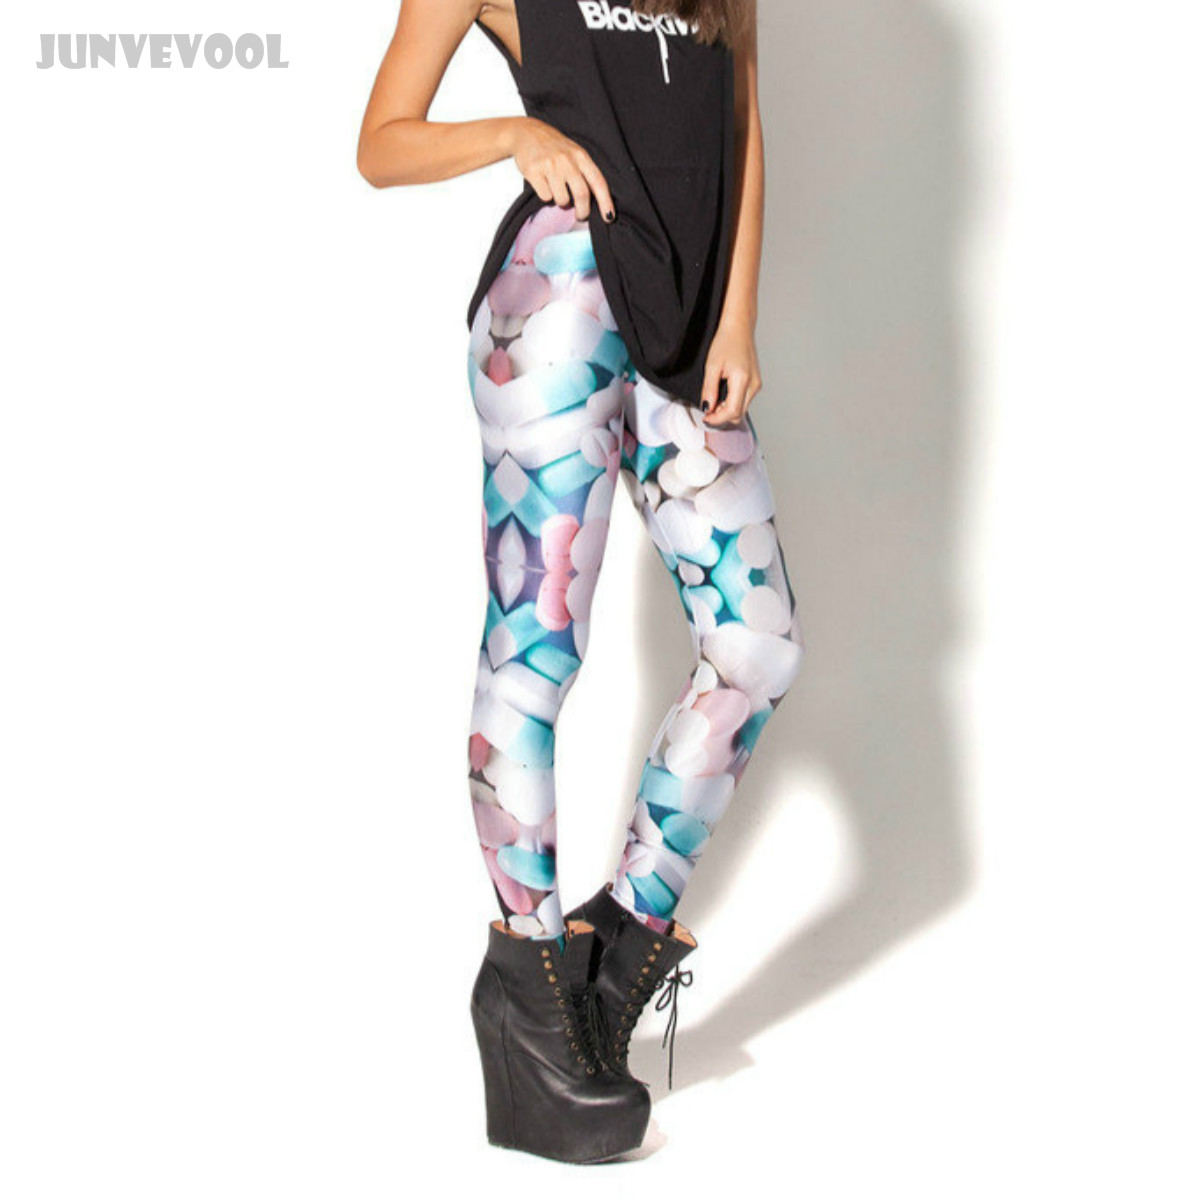 Fitness Leggings Cheap: Cheap Fitness Clothes Sexy Women Skinny Jeggings Stretchy